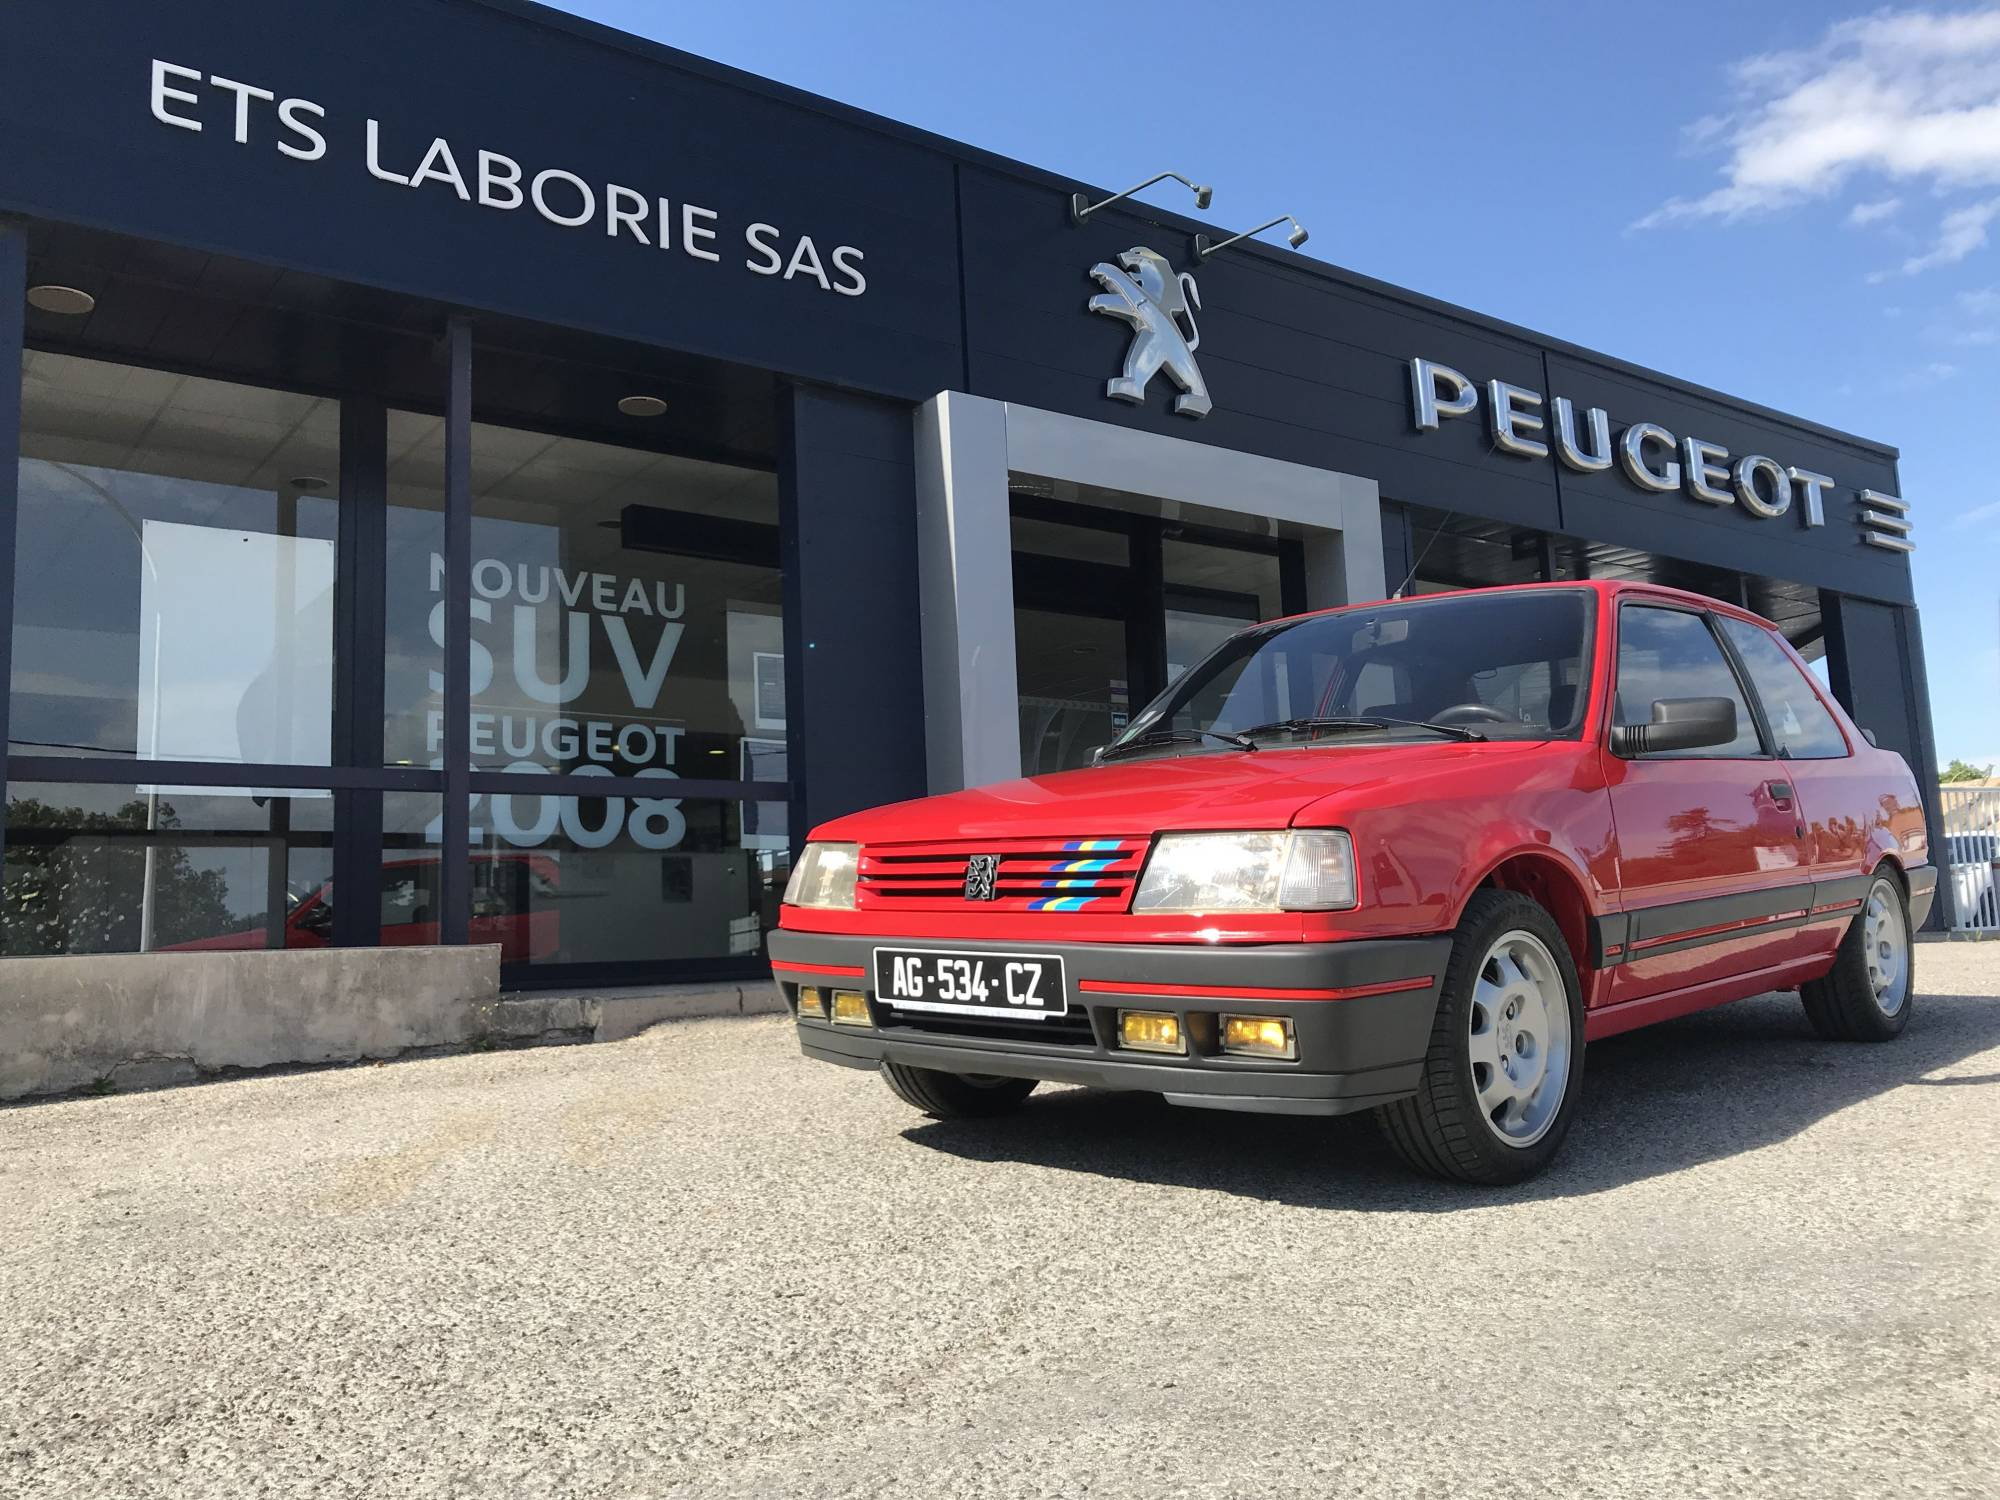 Garage peugeot uz s vente voitures neuves ou d 39 occasion for Garage peugeot cabailh plaisir